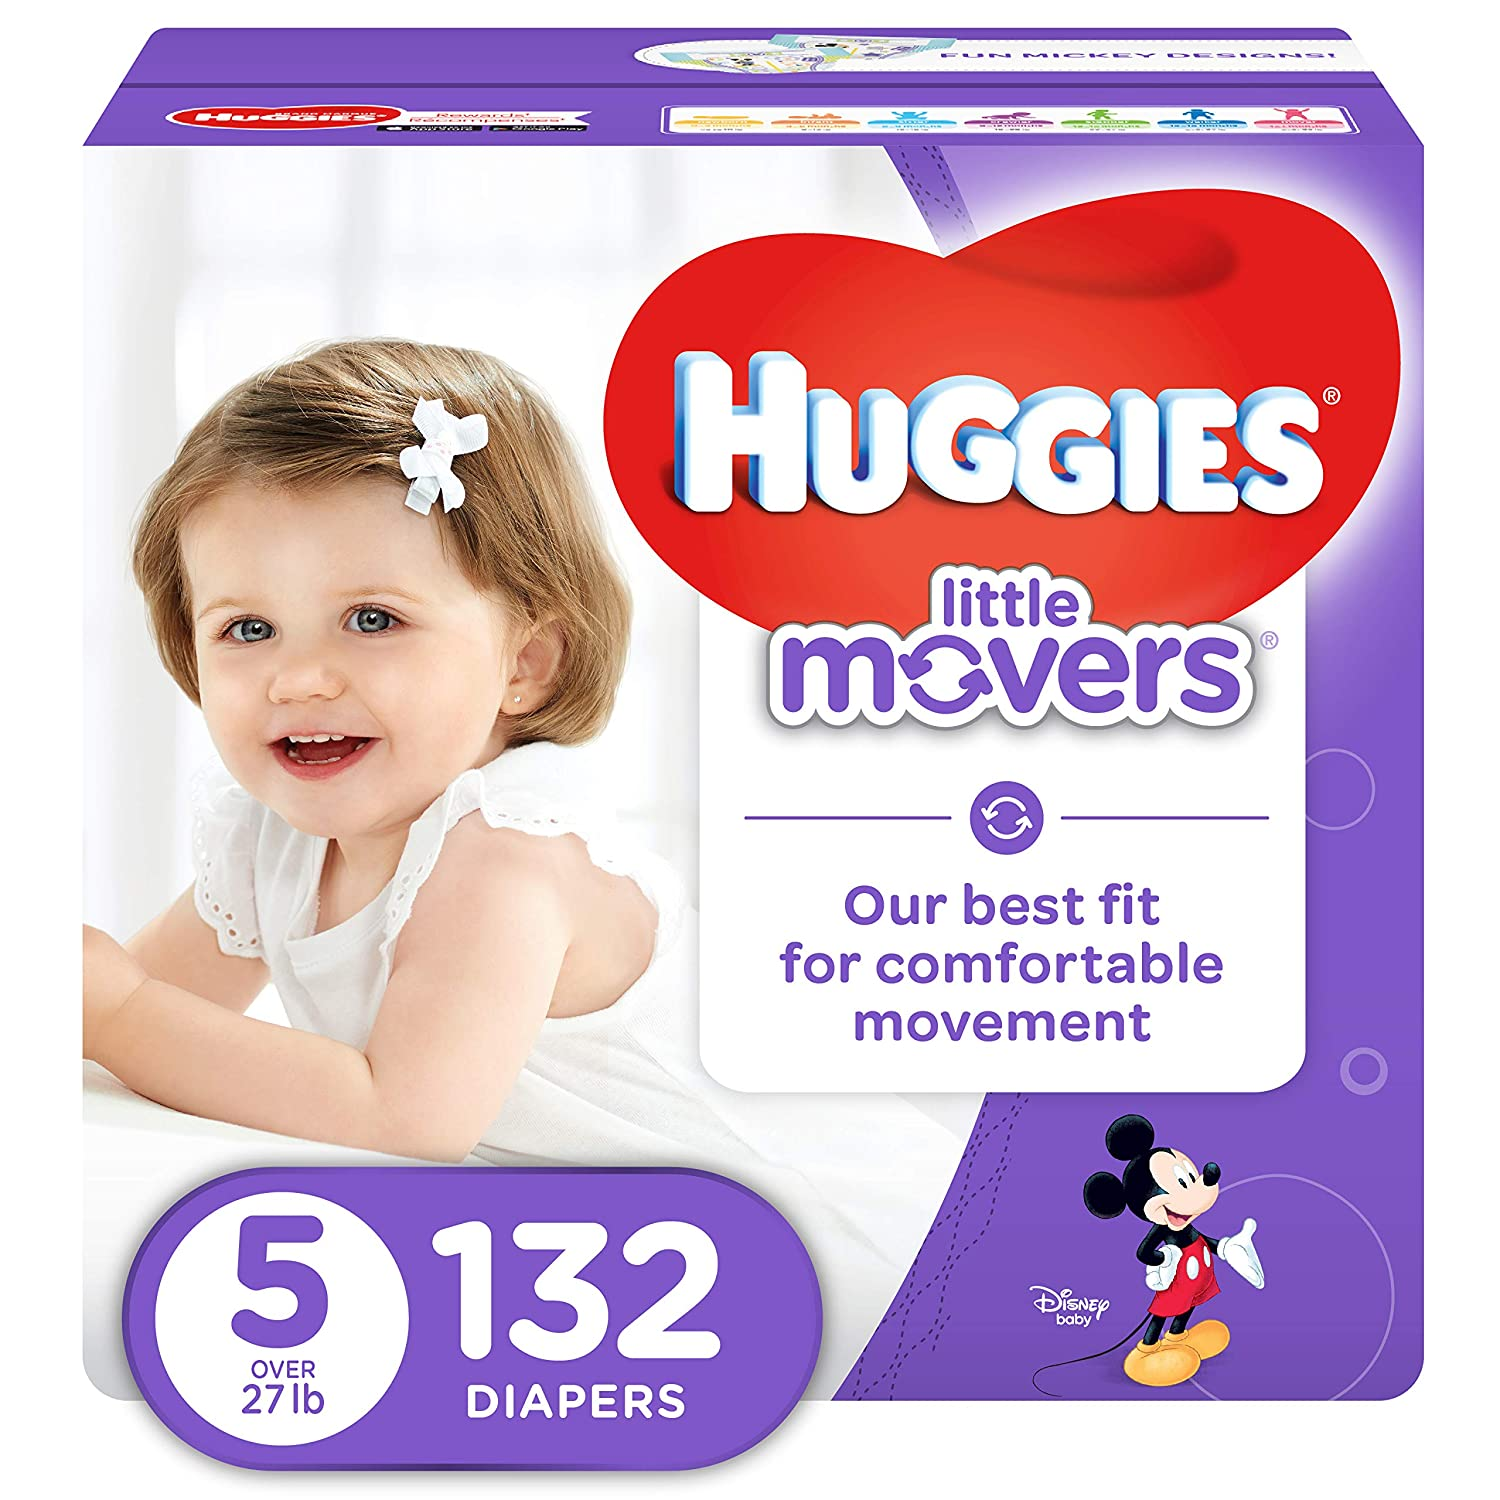 HUGGIES LITTLE MOVERS, Baby Diapers, Size 5, 132ct Kimberly Clark 10036000408253